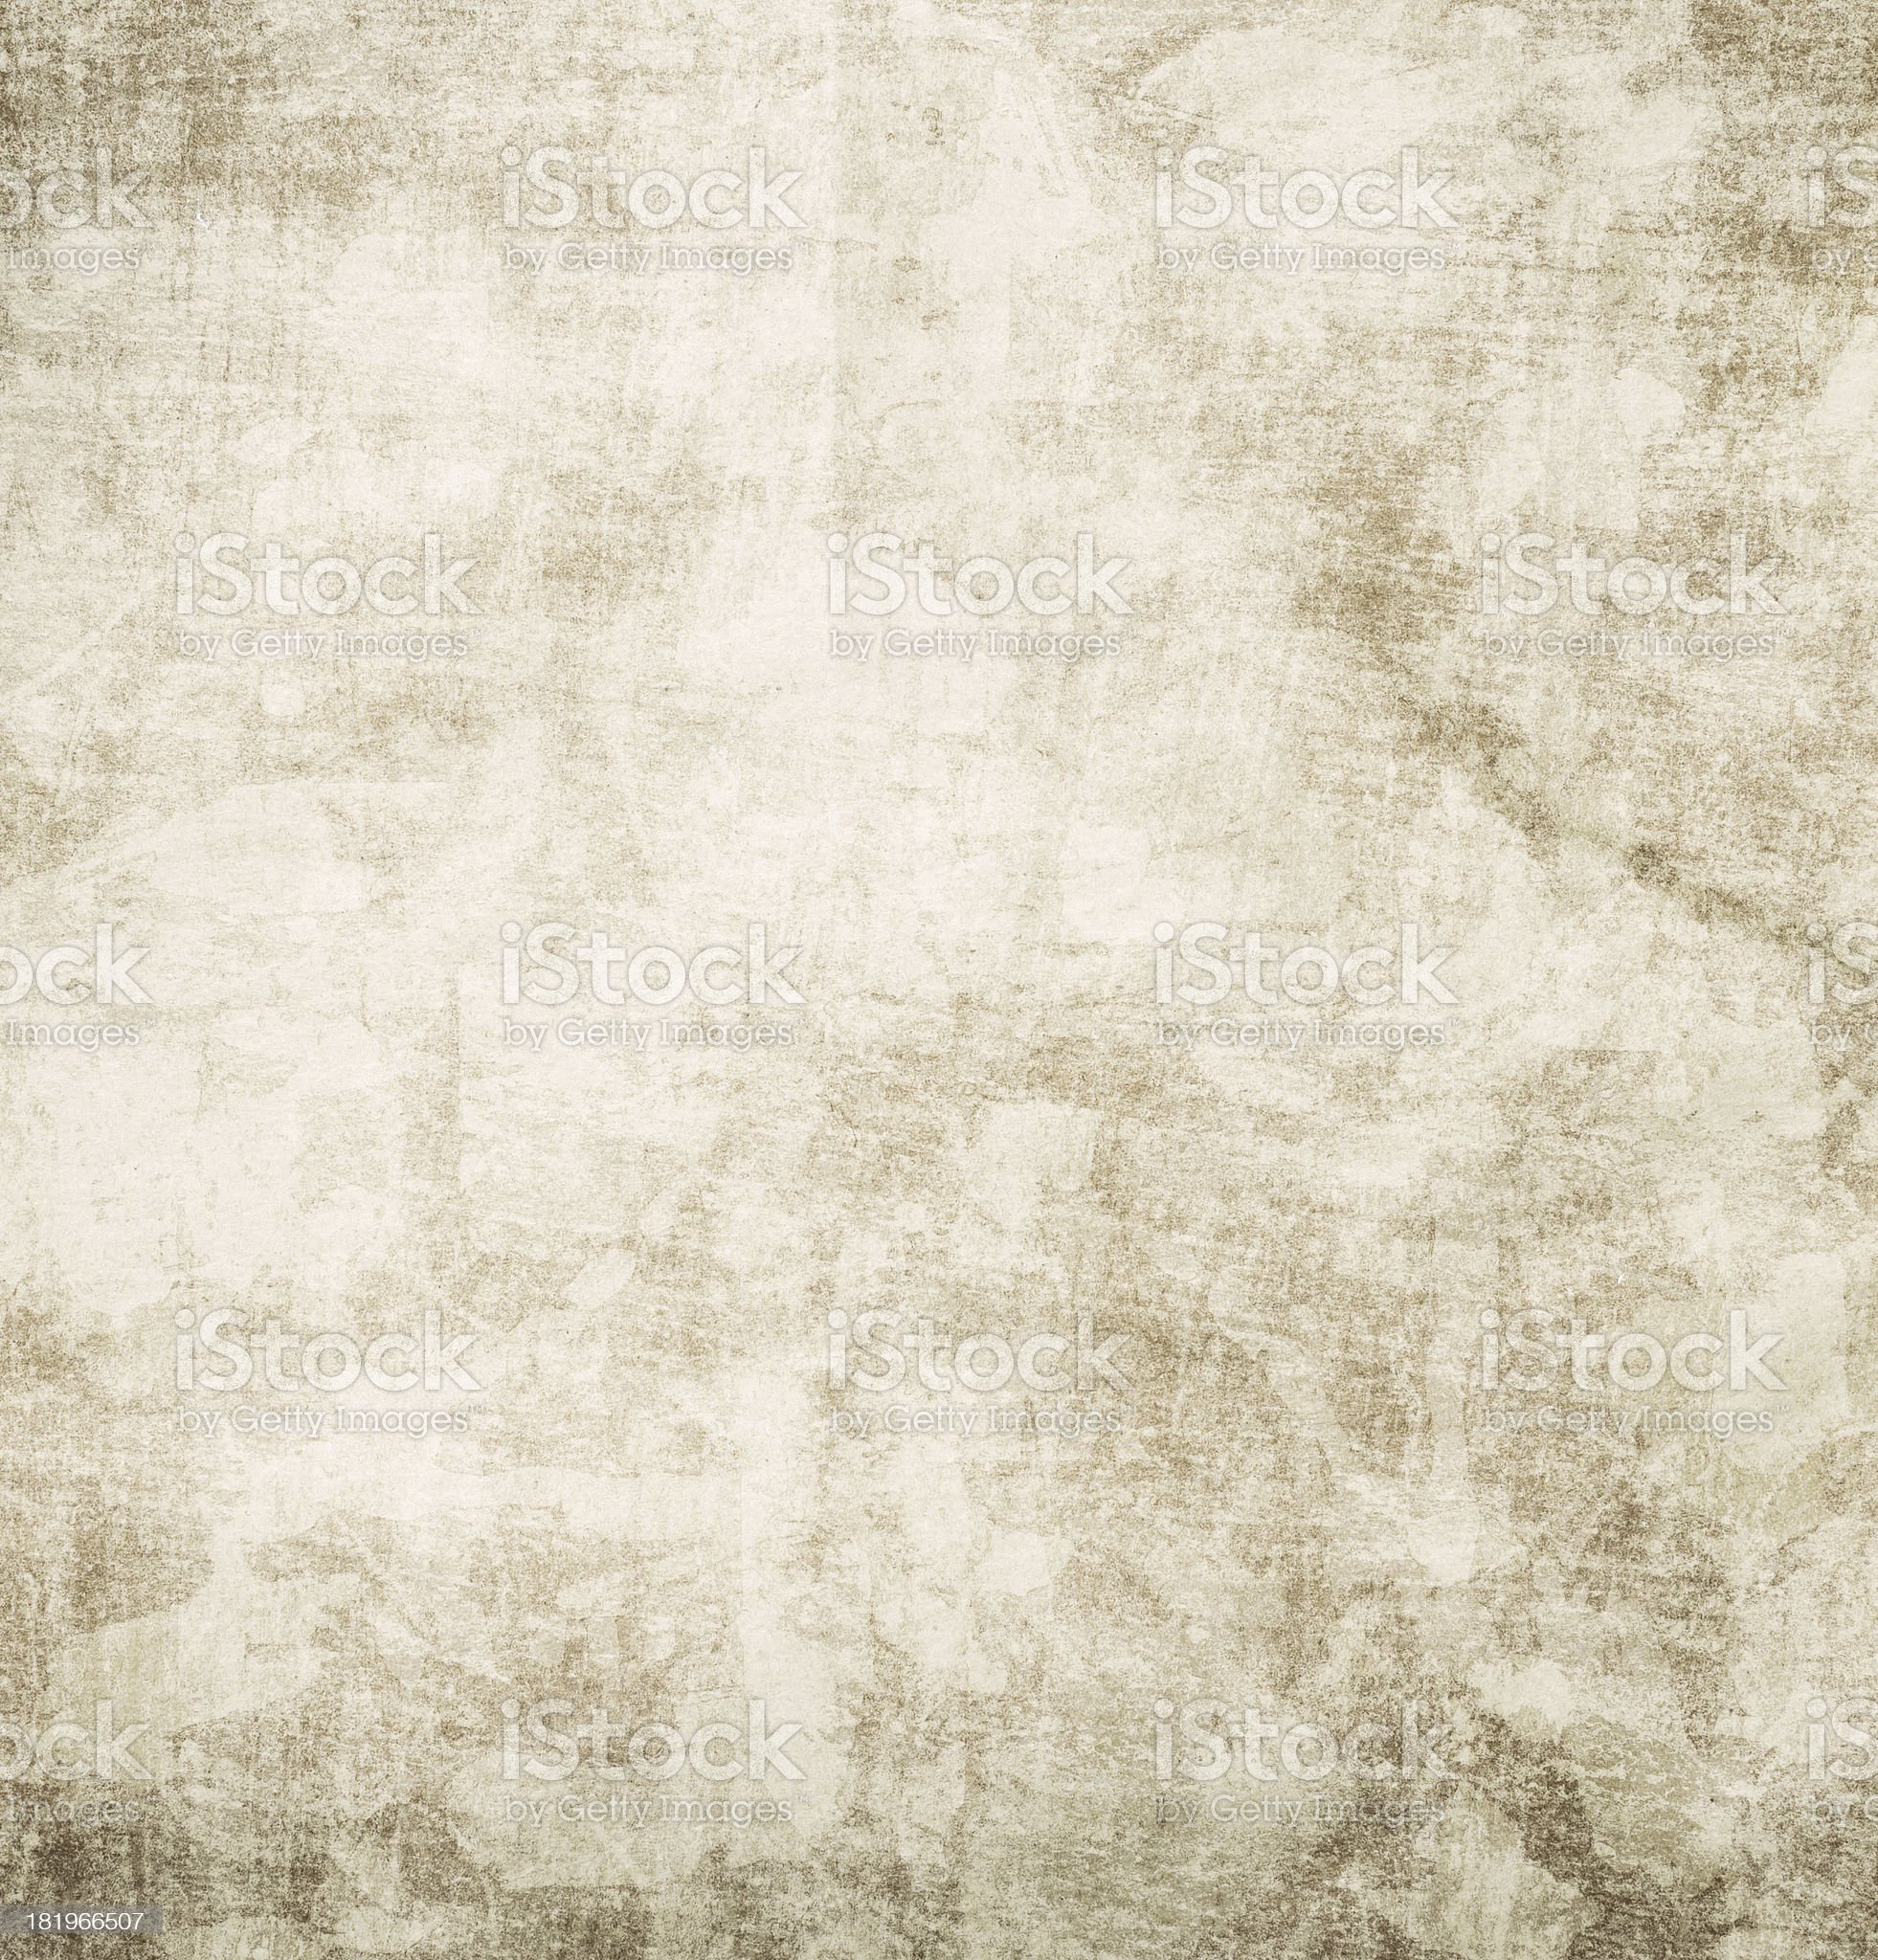 Grunge Paper Background with space for text or image. royalty-free stock photo